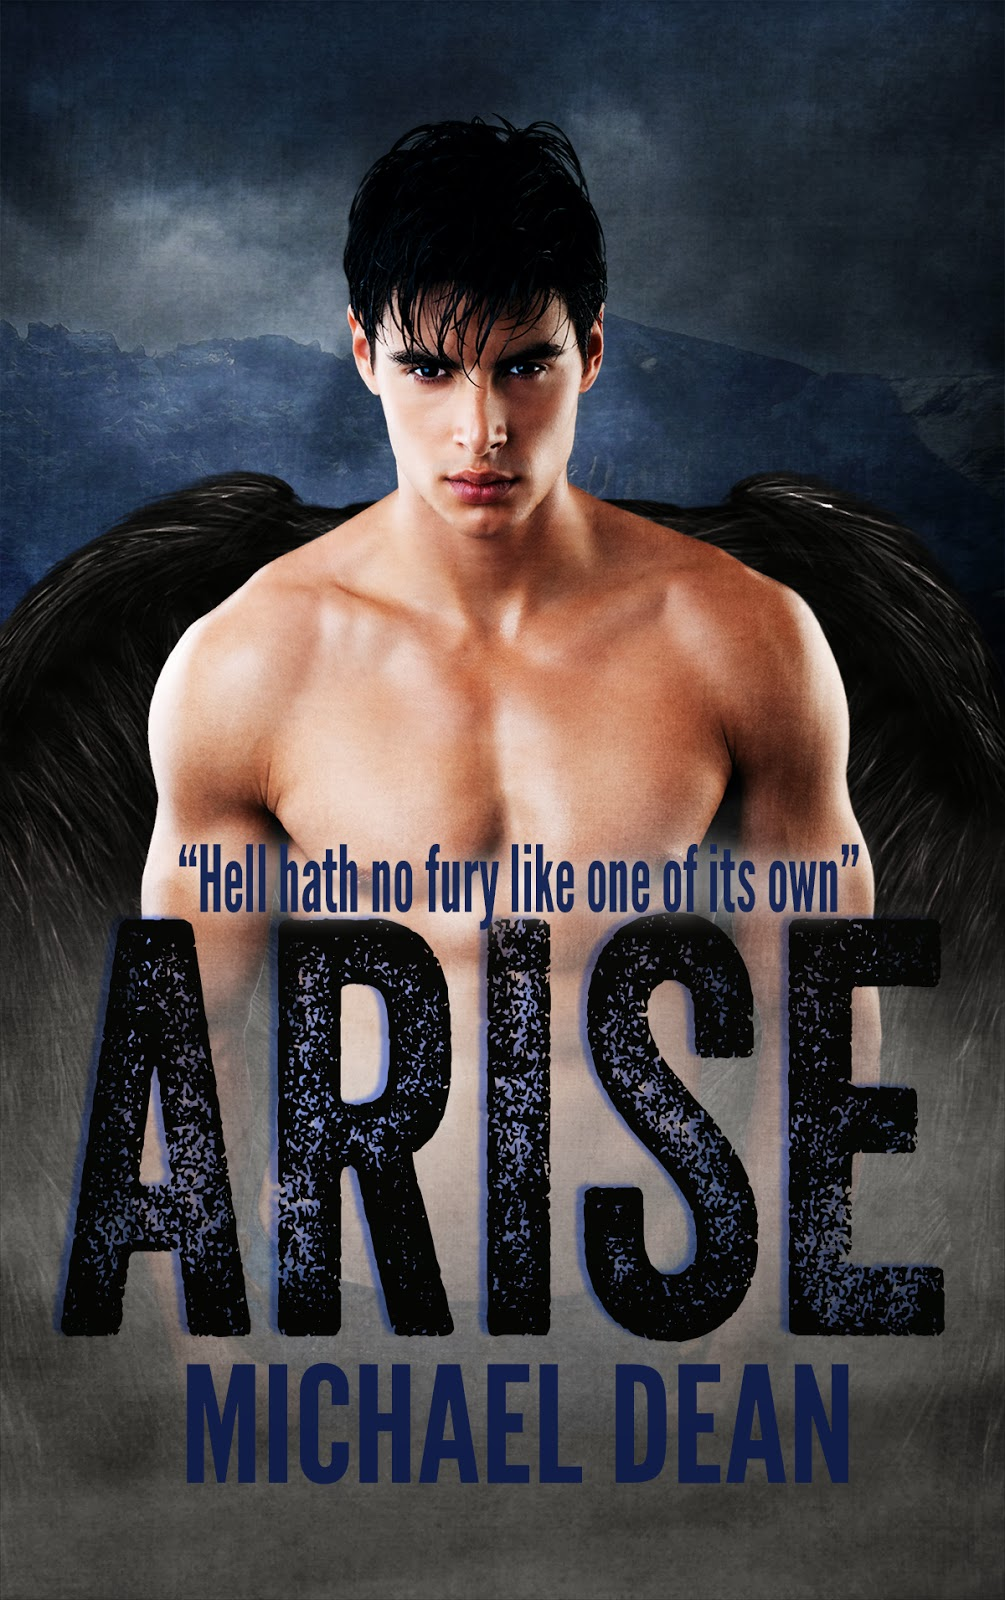 https://www.goodreads.com/book/show/20940519-arise